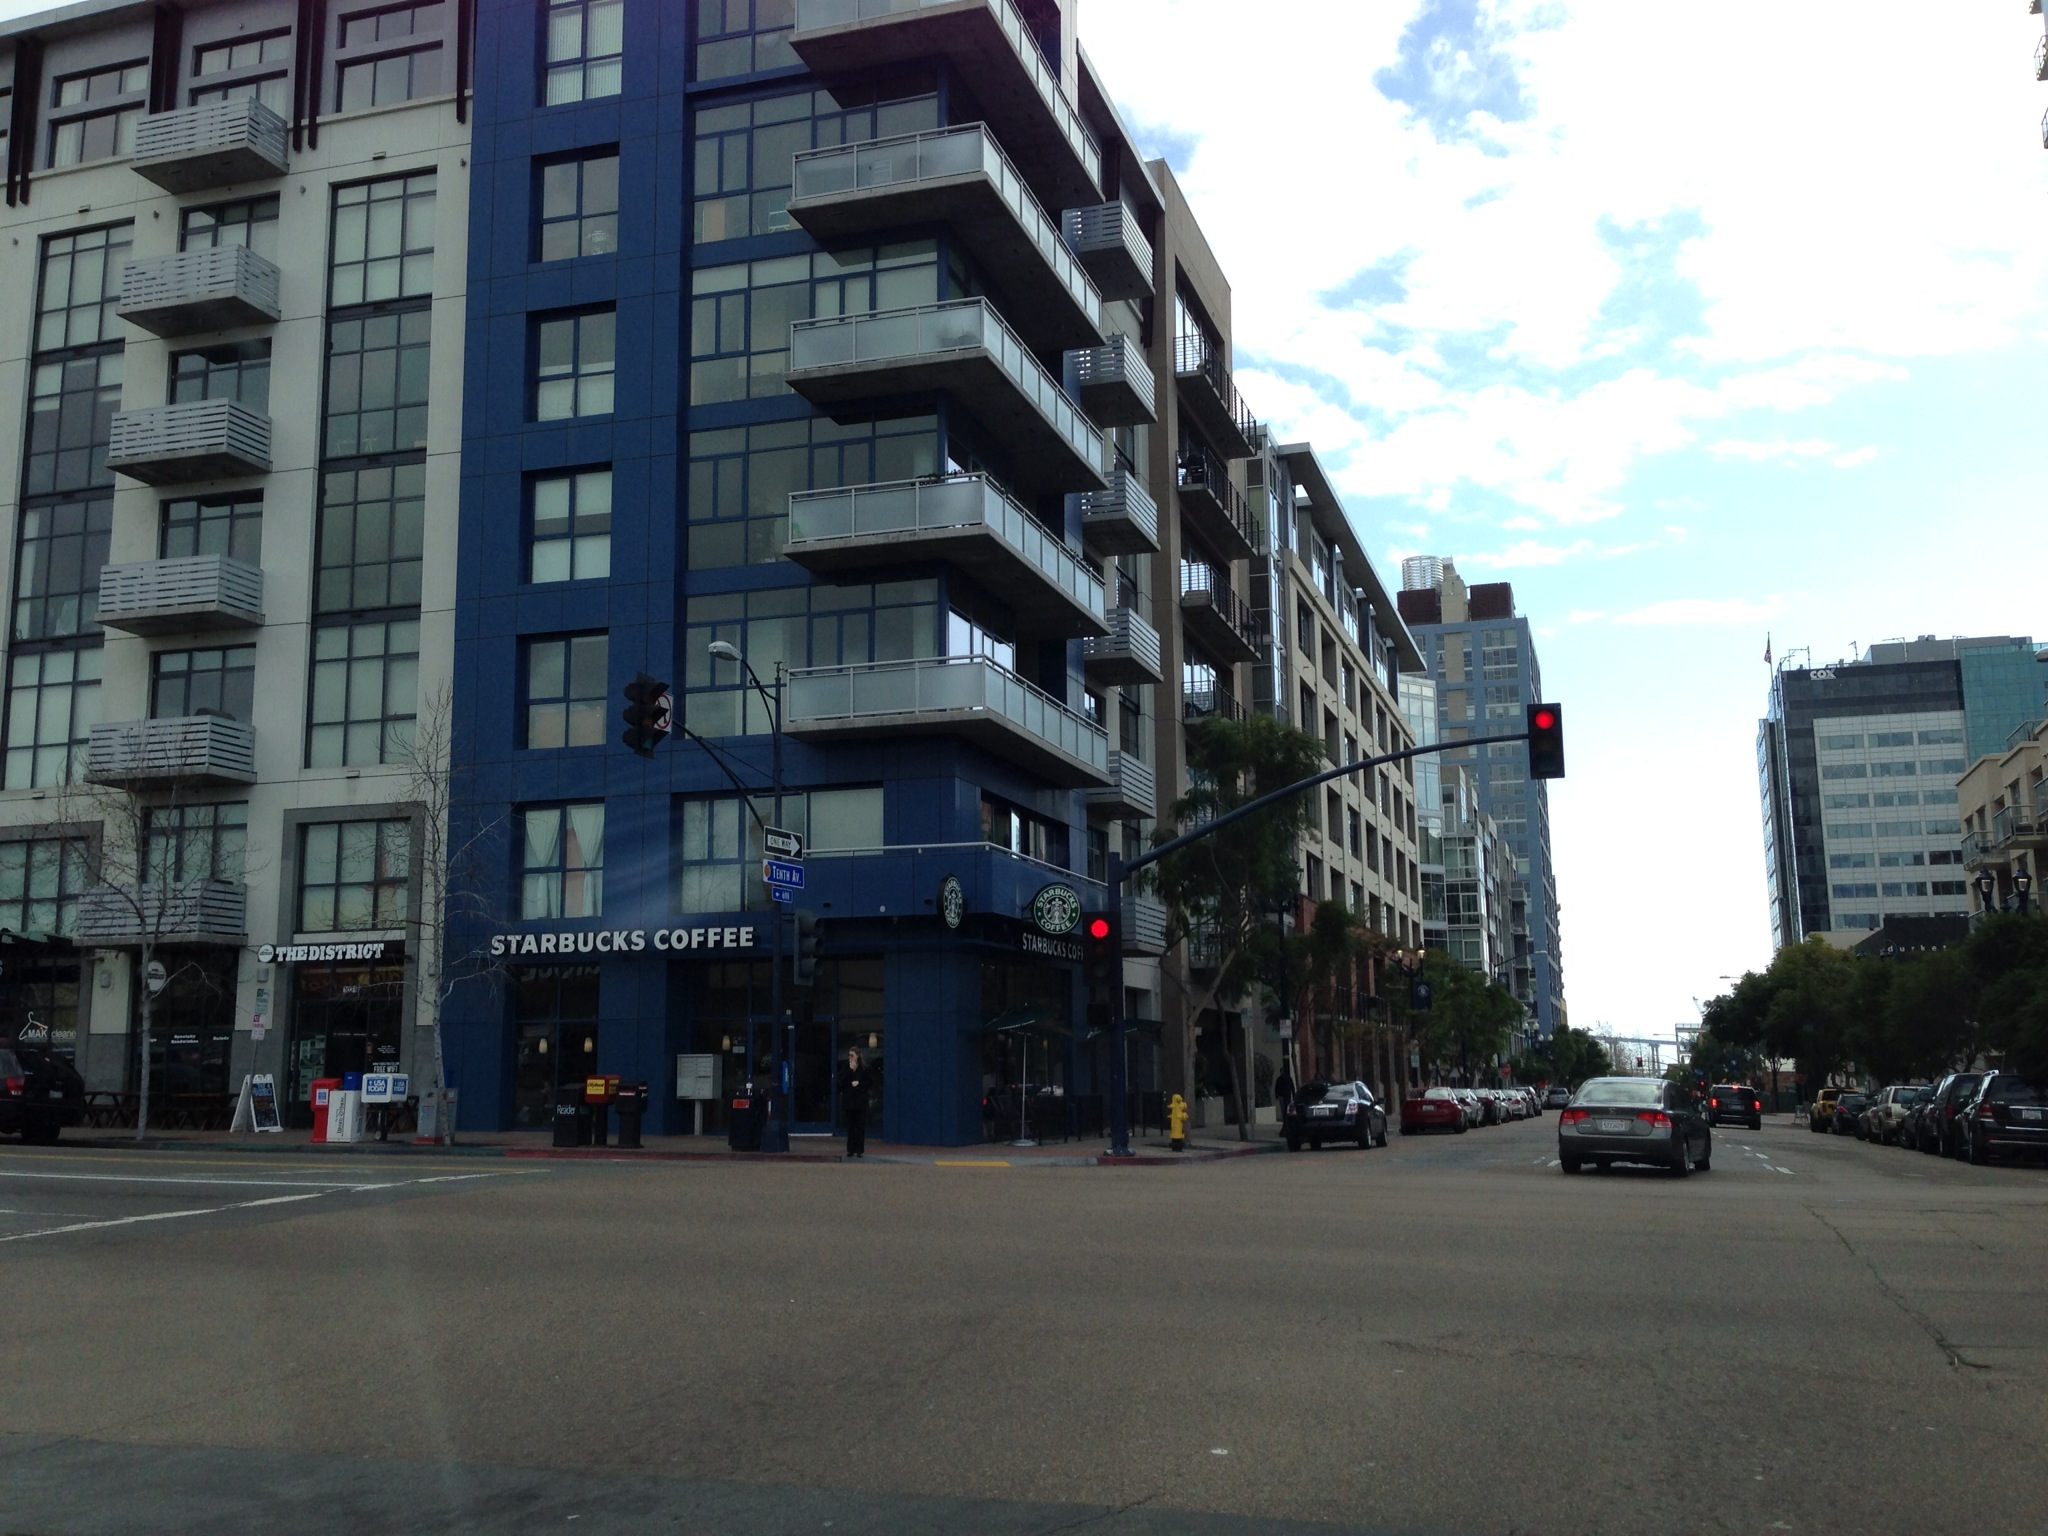 The buildings with tons of windows reminded us of Vancouver.